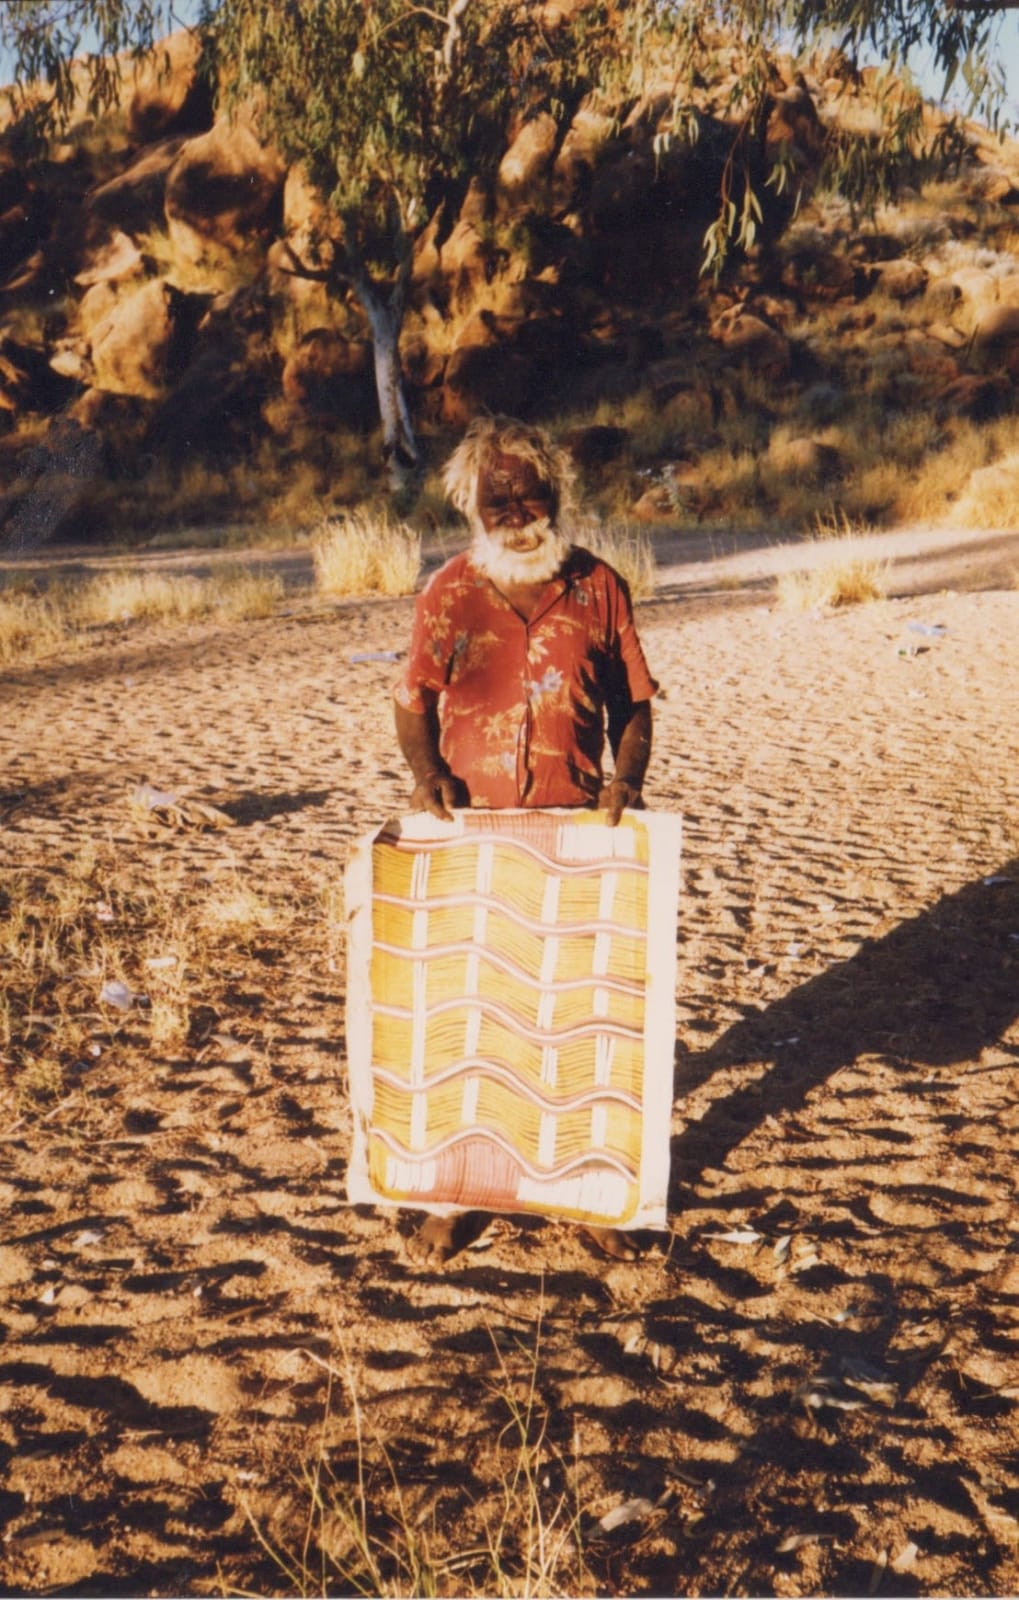 Billy Stockman with his painting at Papunya